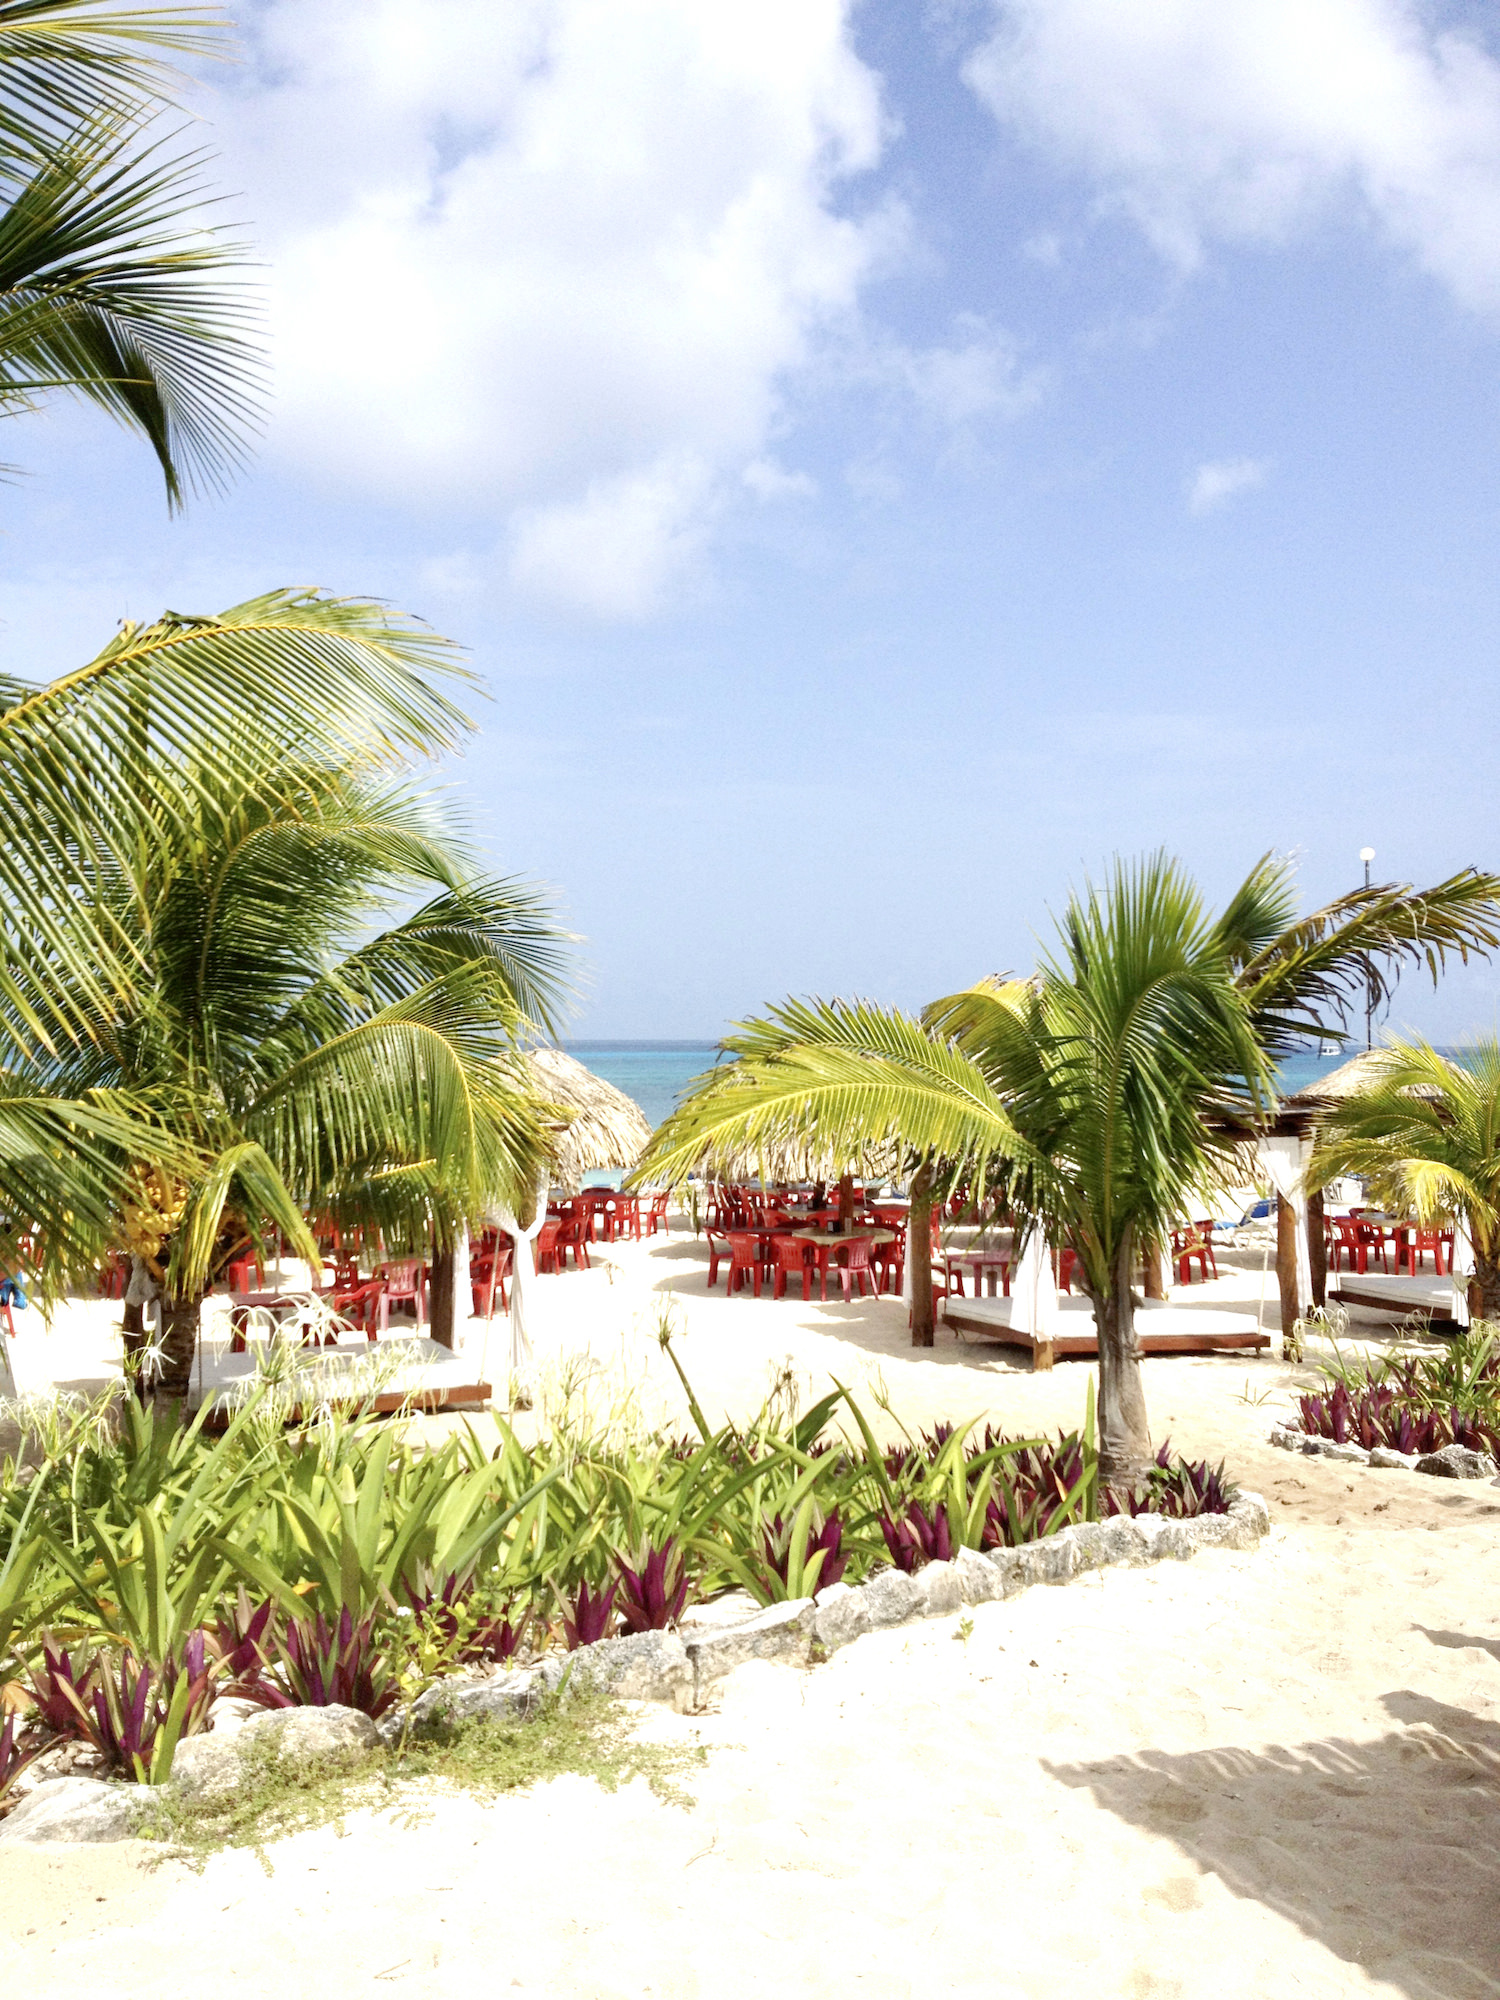 Summer 2012 in COzumel, Mexico